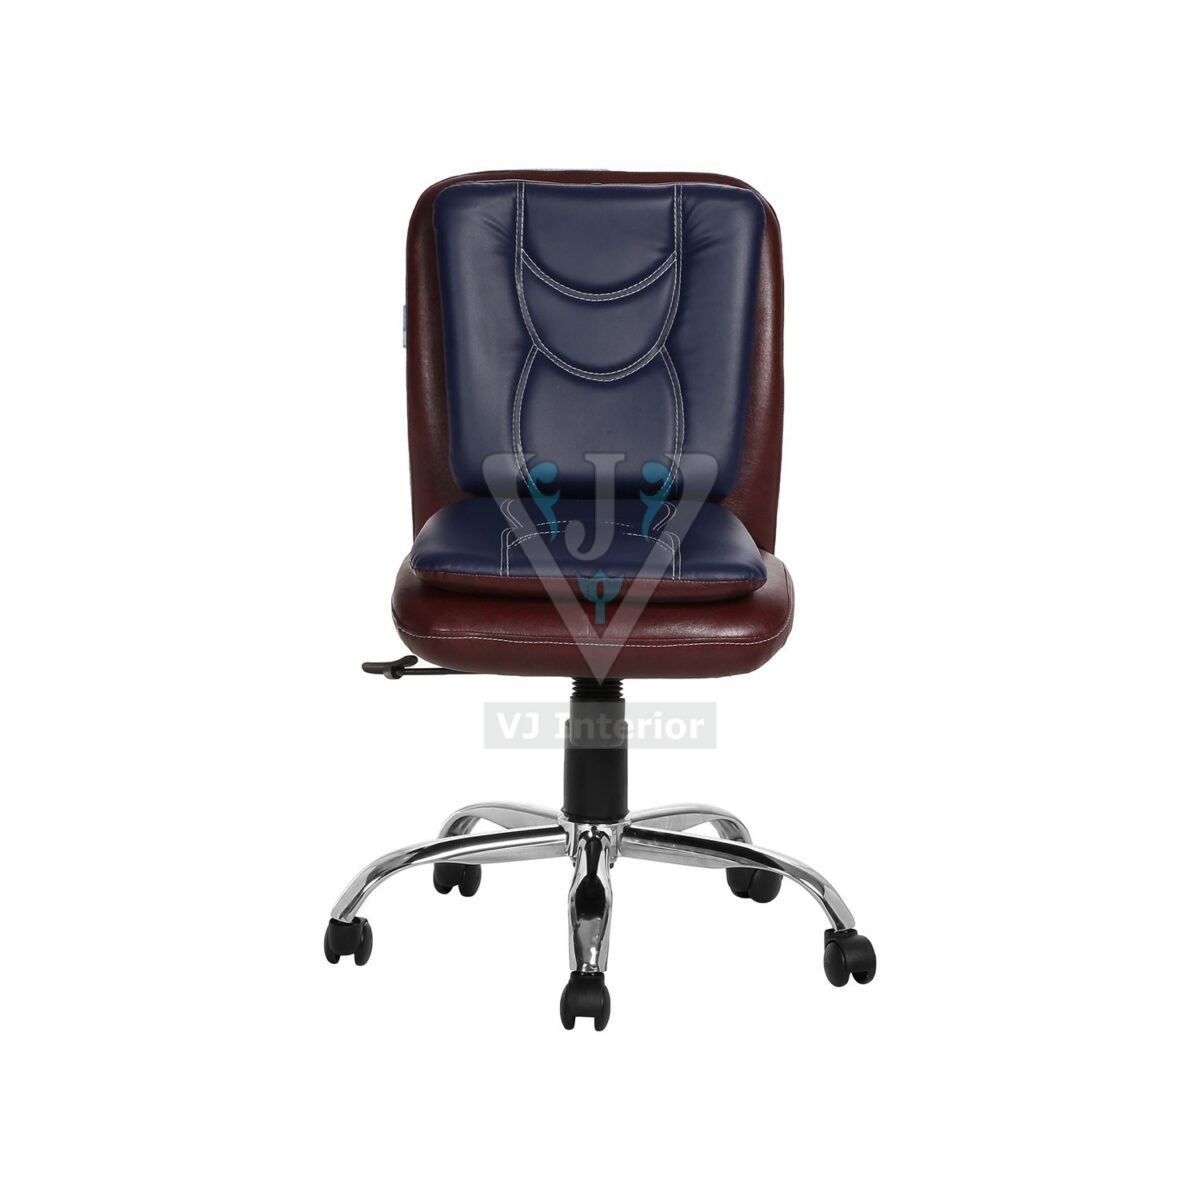 THE LIBRANEJAR LB WORKSTAION CHAIR DARK BROWN AND BLUE